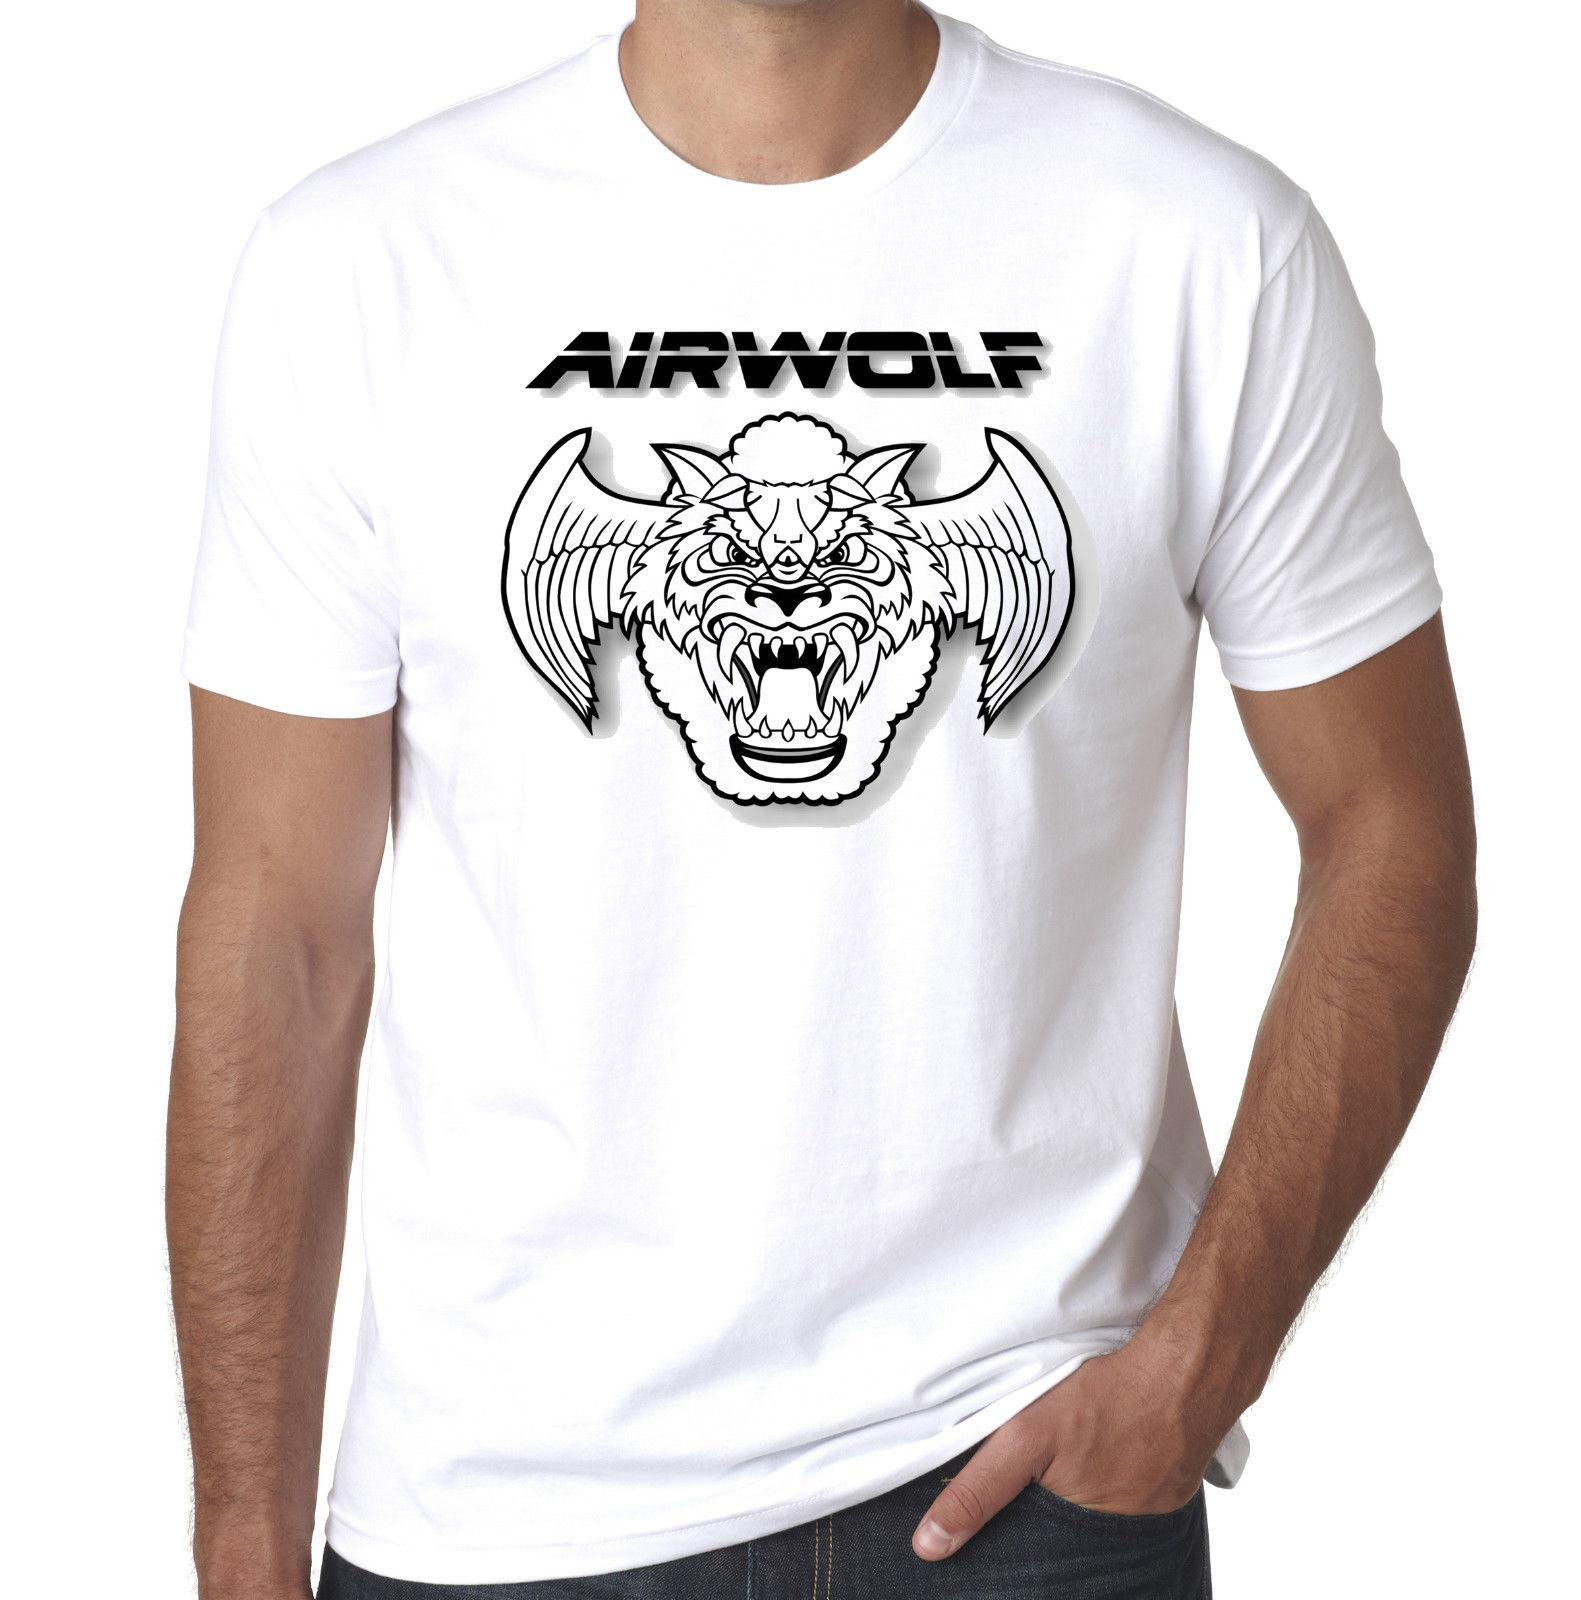 Airwolf 80s tv helicopter retro 100% cotton mens printed tshirt Comfortable t shirt Casual Short Sleeve Print 100% Cotton